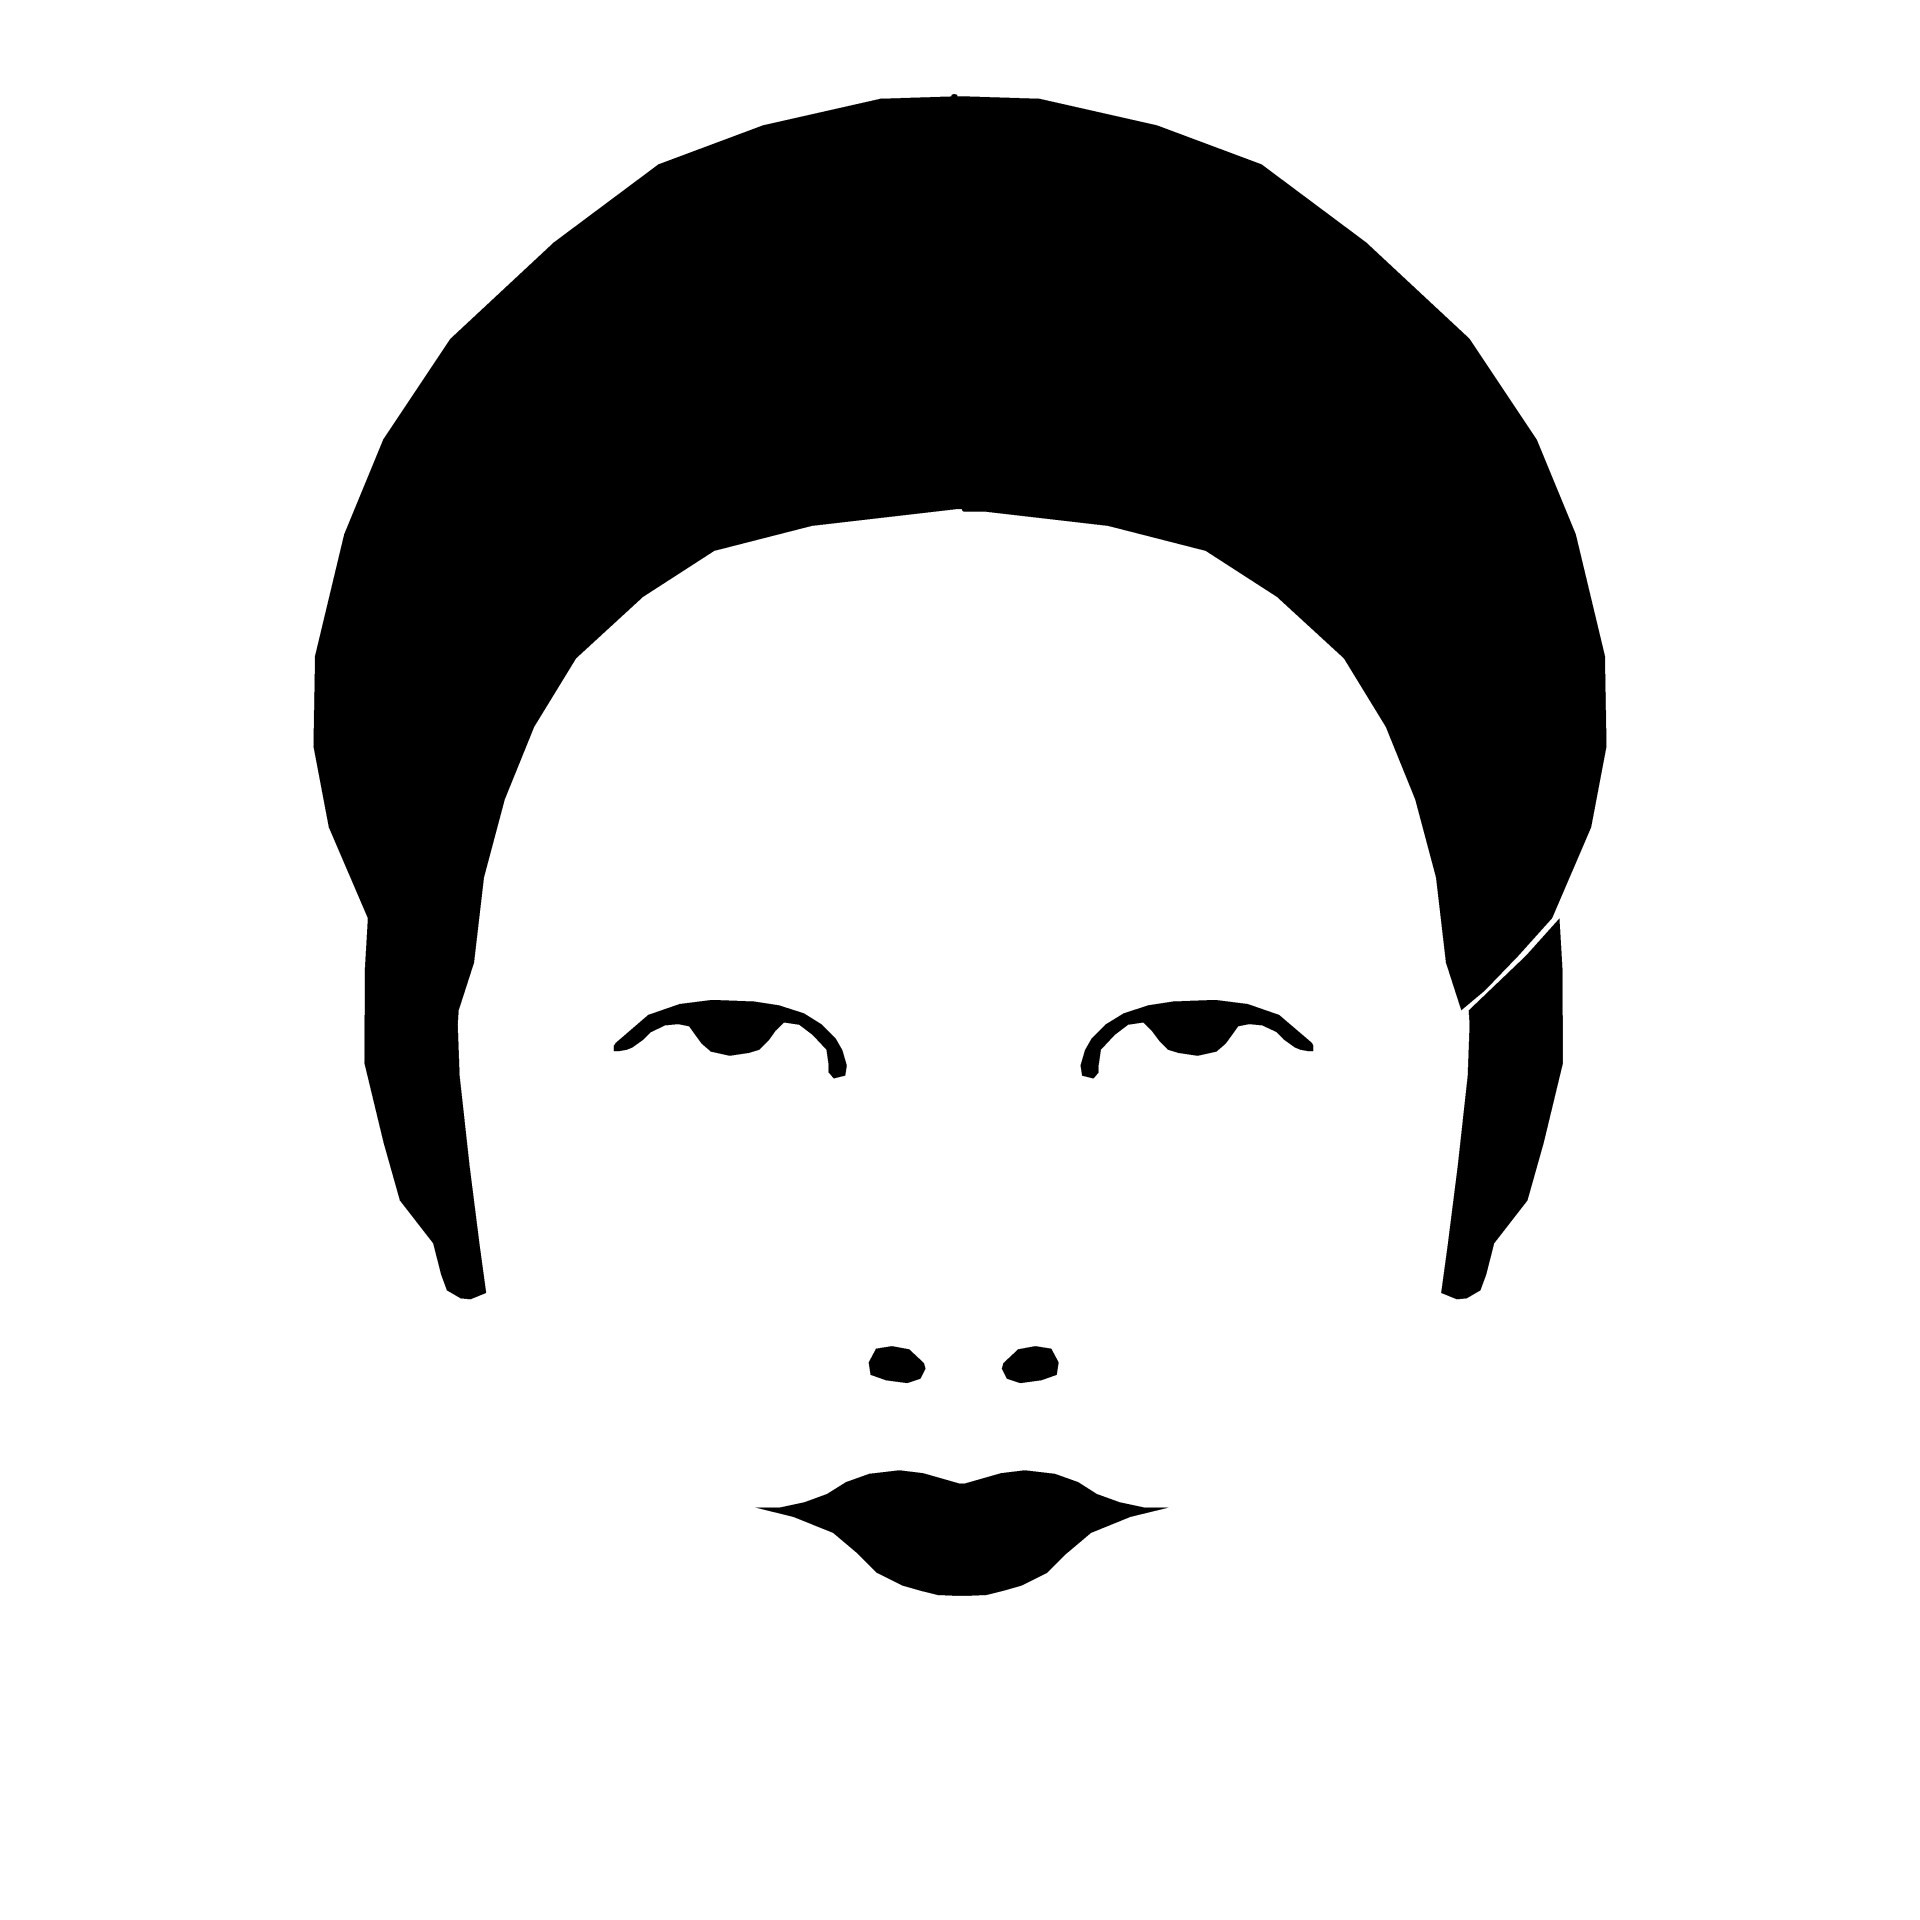 1920x1920 Drawing Of Woman's Head With Face Features Free Image